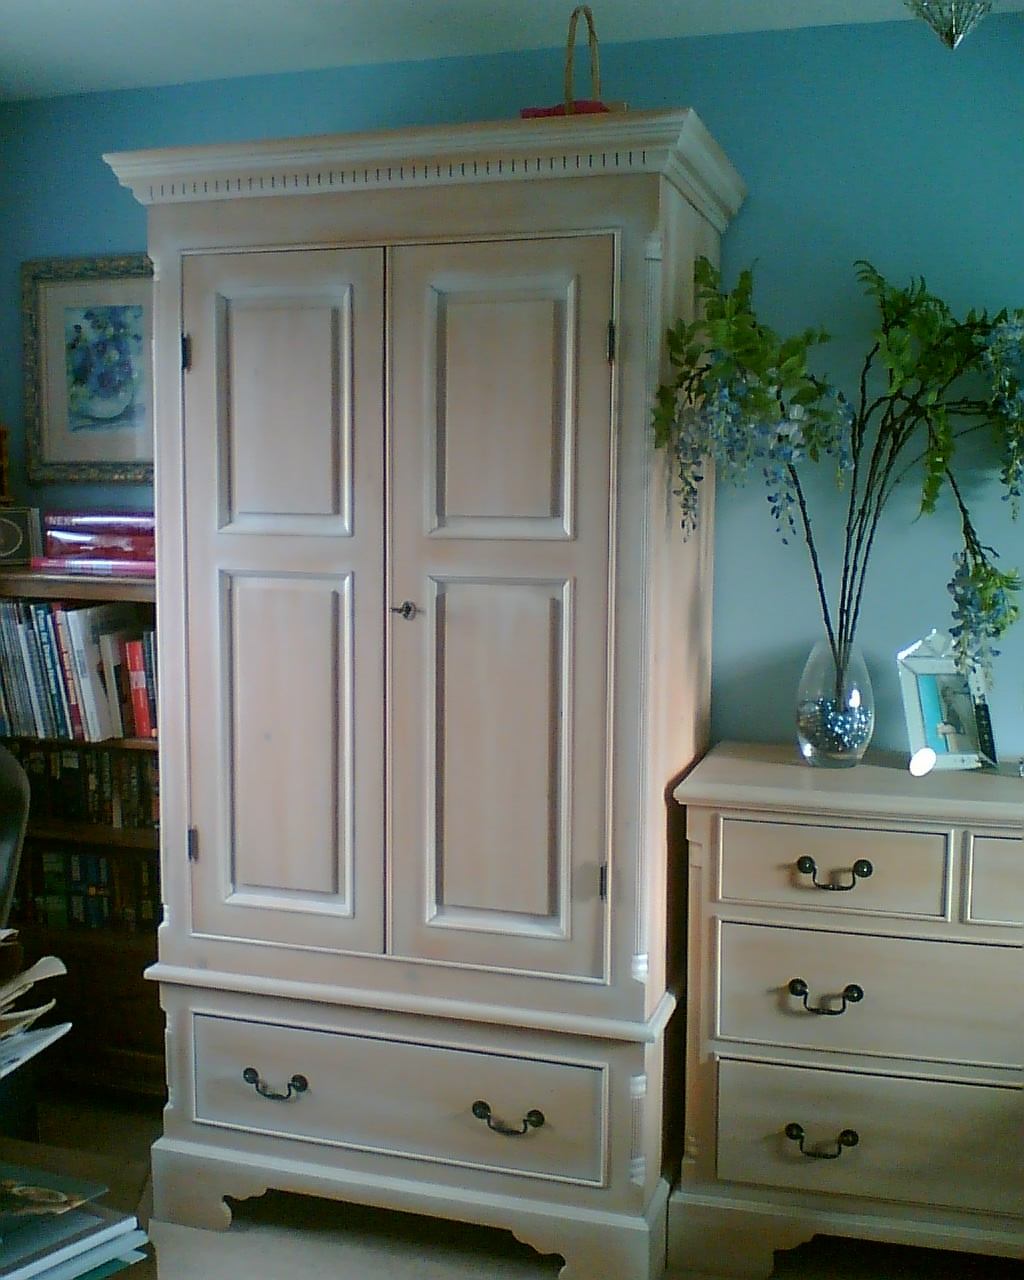 Excellent White Washed Furniture For Your Aesthetic Home : White Washed Furniture